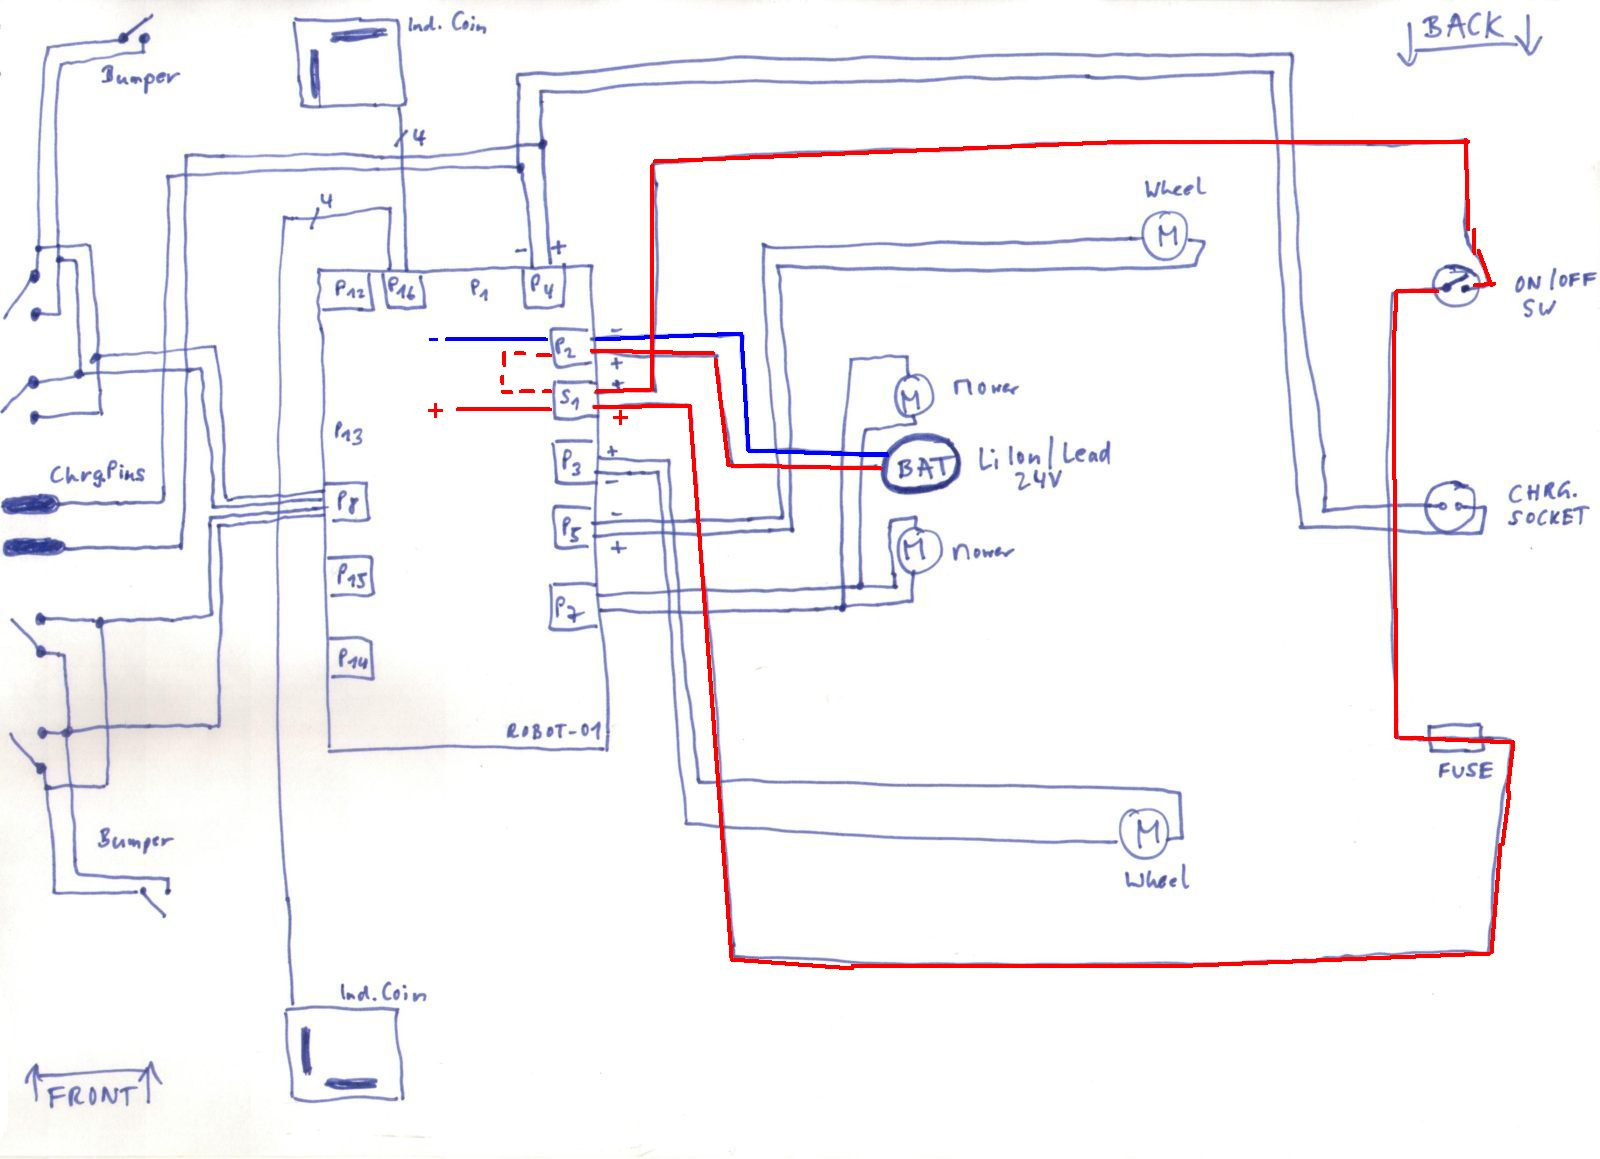 1977 Jeep Cj5 Wiring Harness 28 Diagram Images Clips Wiringresize16002c1159 Diagrams 11002459 Electrical